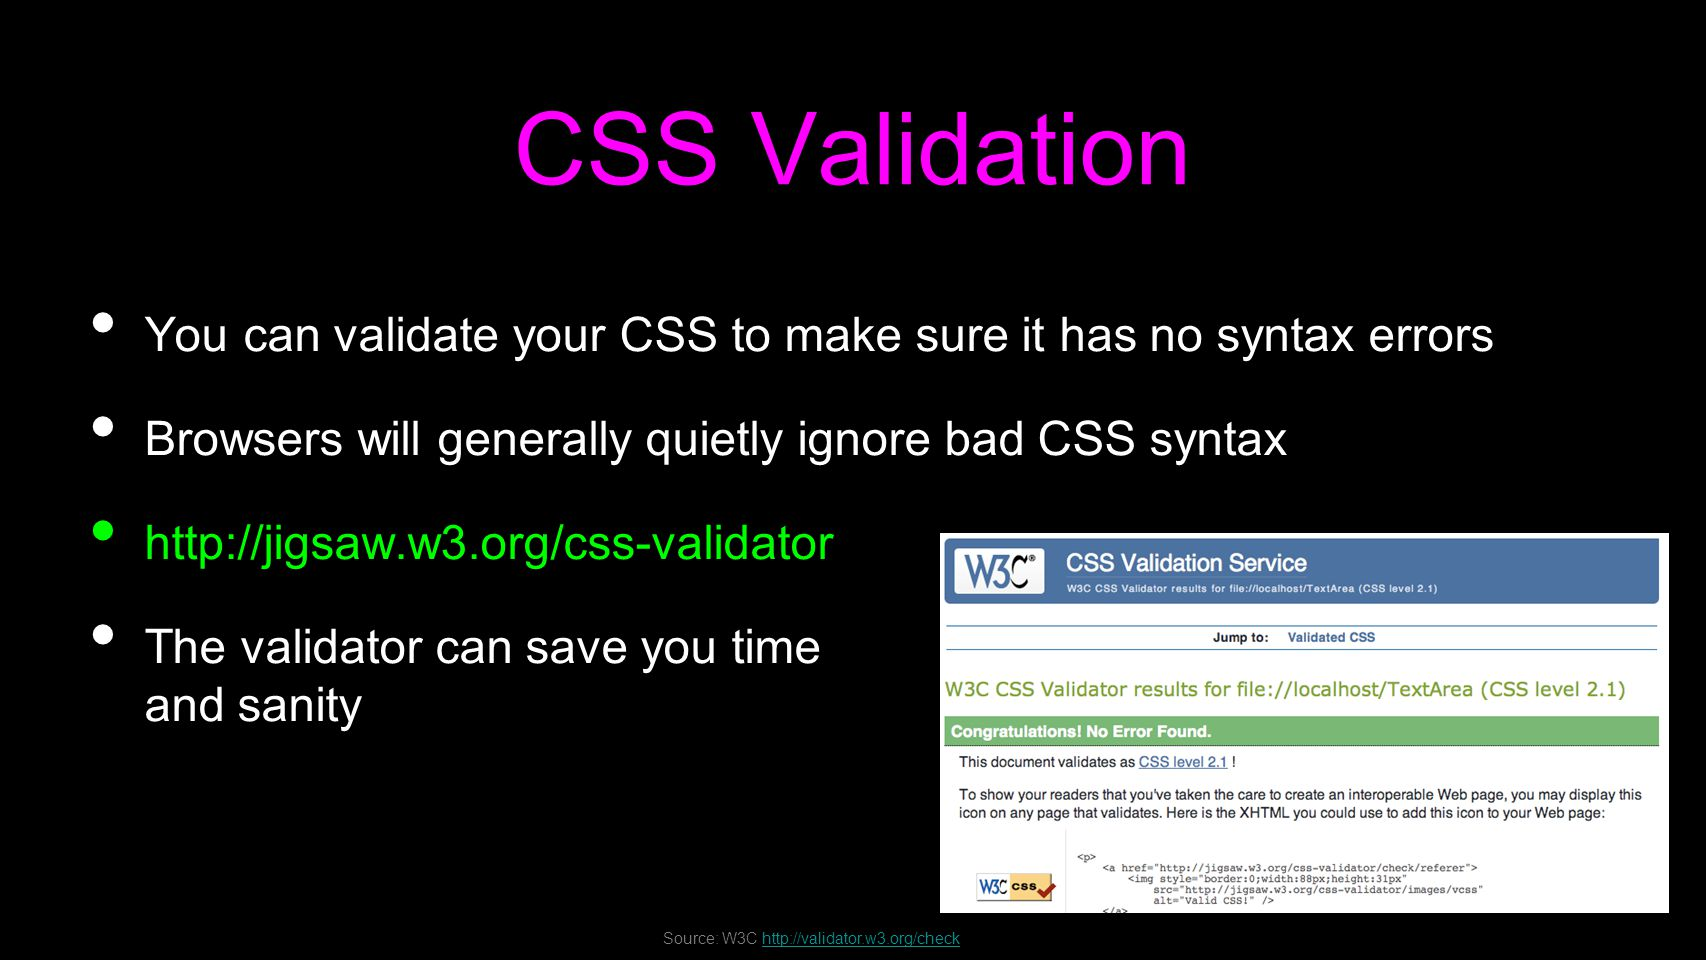 CSS Validation You can validate your CSS to make sure it has no syntax errors Browsers will generally quietly ignore bad CSS syntax http://jigsaw.w3.org/css-validator The validator can save you time and sanity Source: W3C http://validator.w3.org/checkhttp://validator.w3.org/check